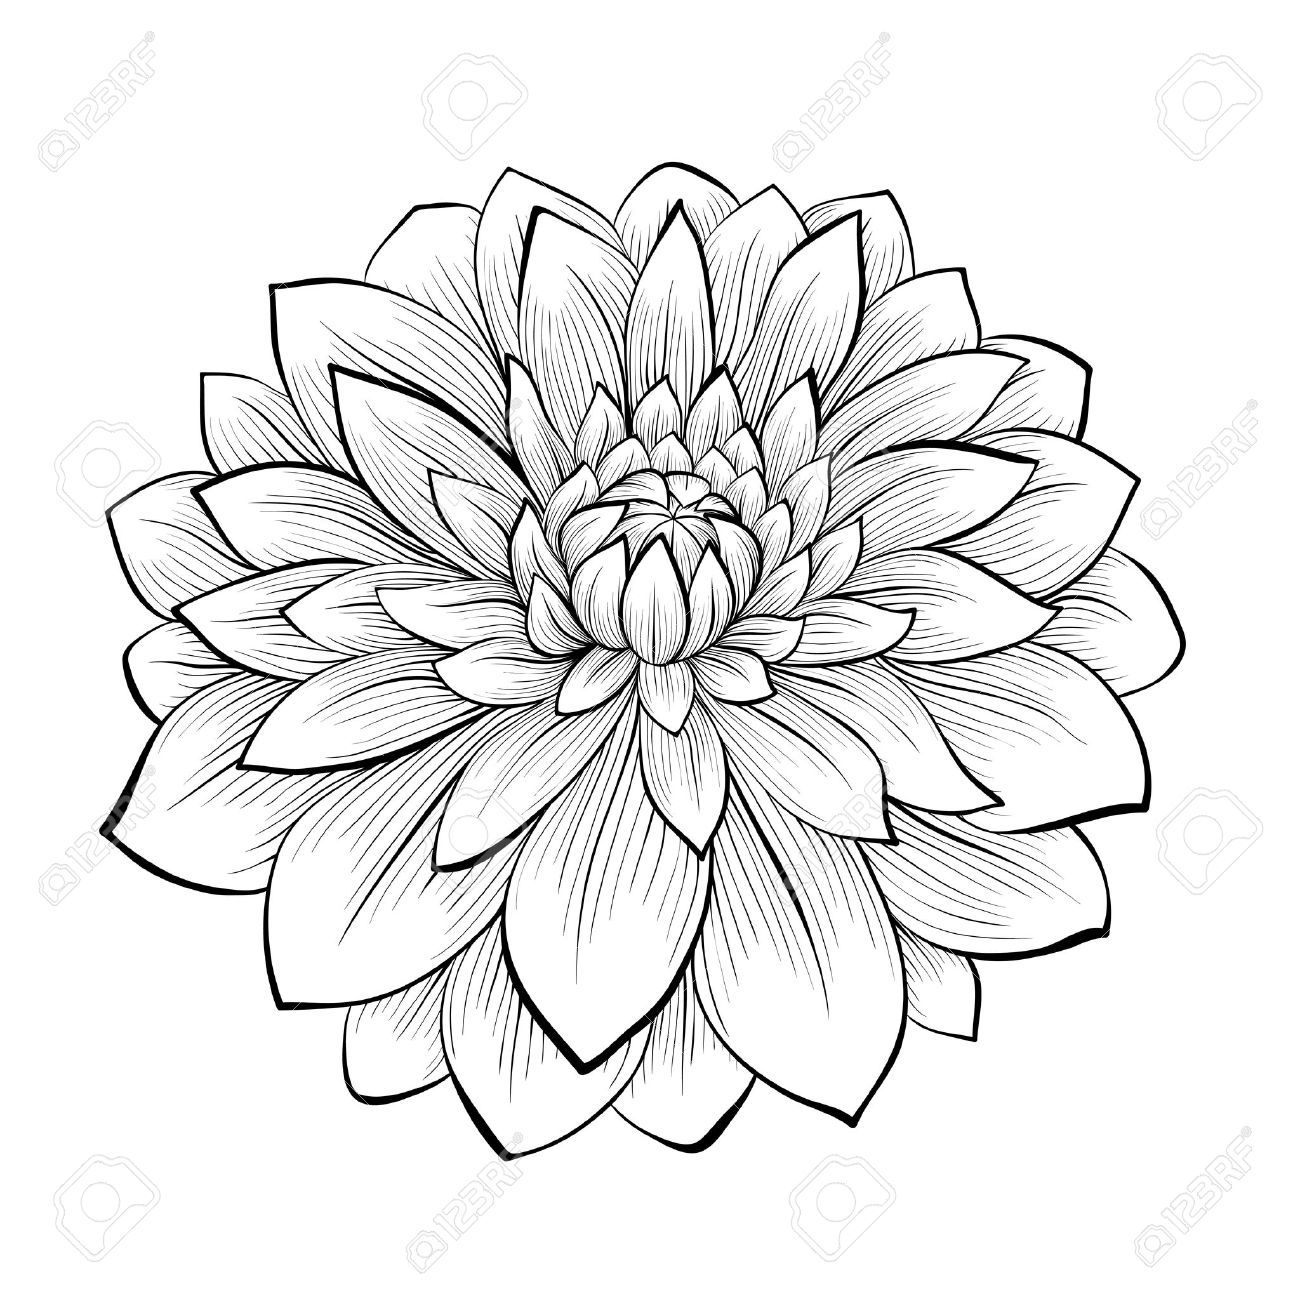 Black dahlia clipart png royalty free library Dahlia clipart black and white 7 » Clipart Portal png royalty free library